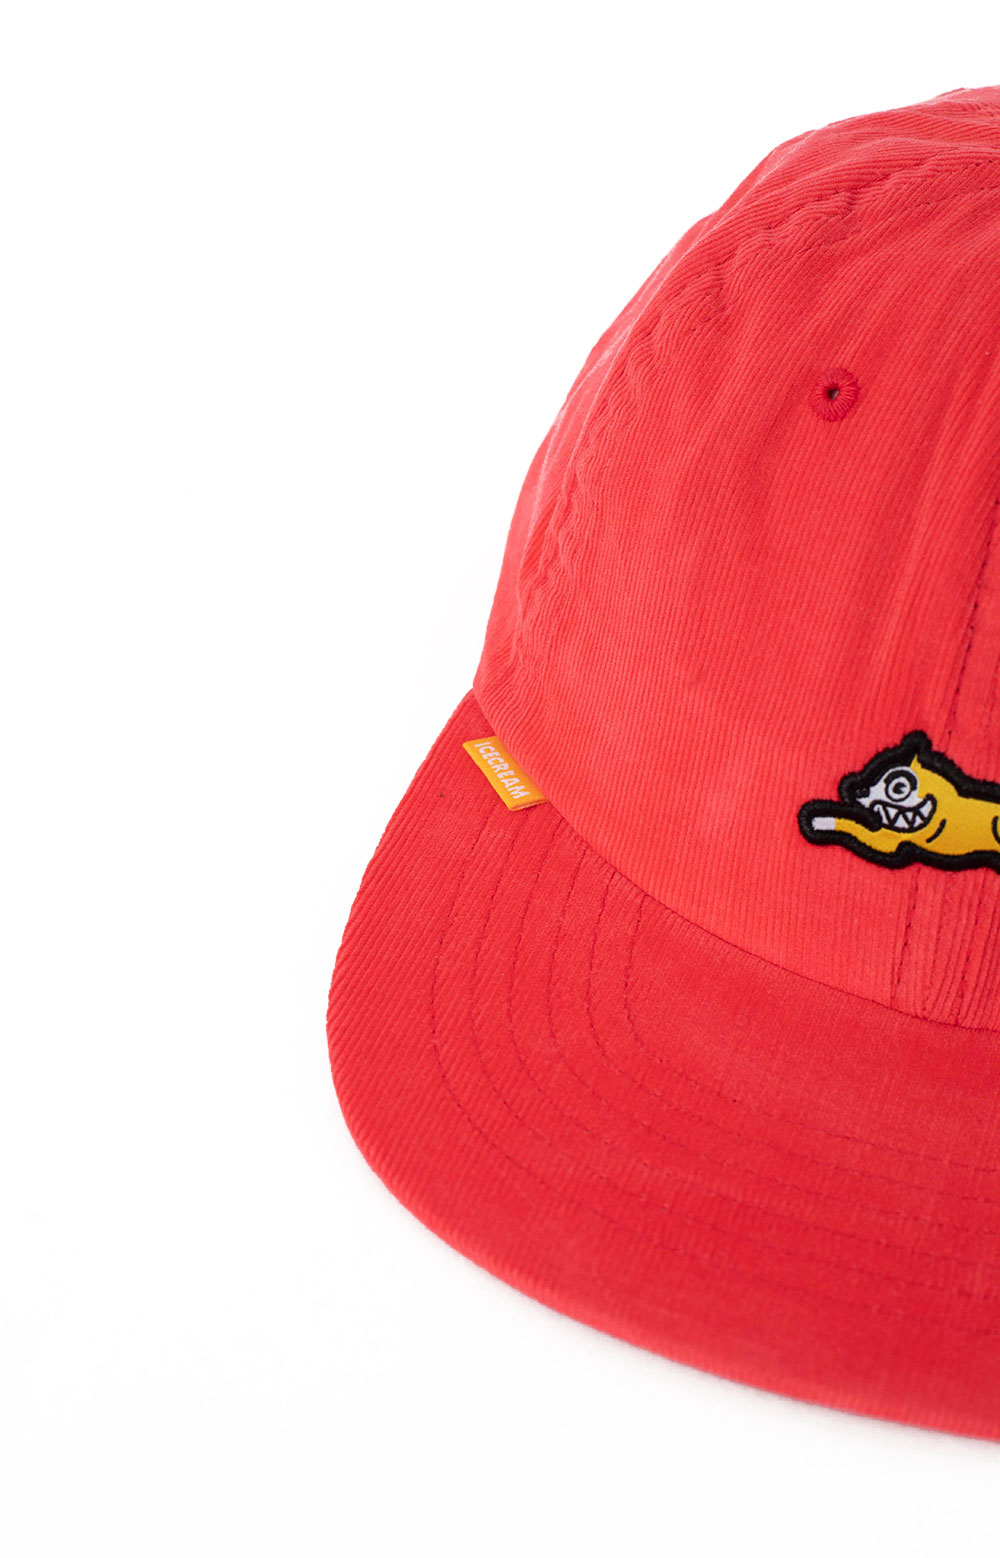 Dawg Polo Cap - Red 2